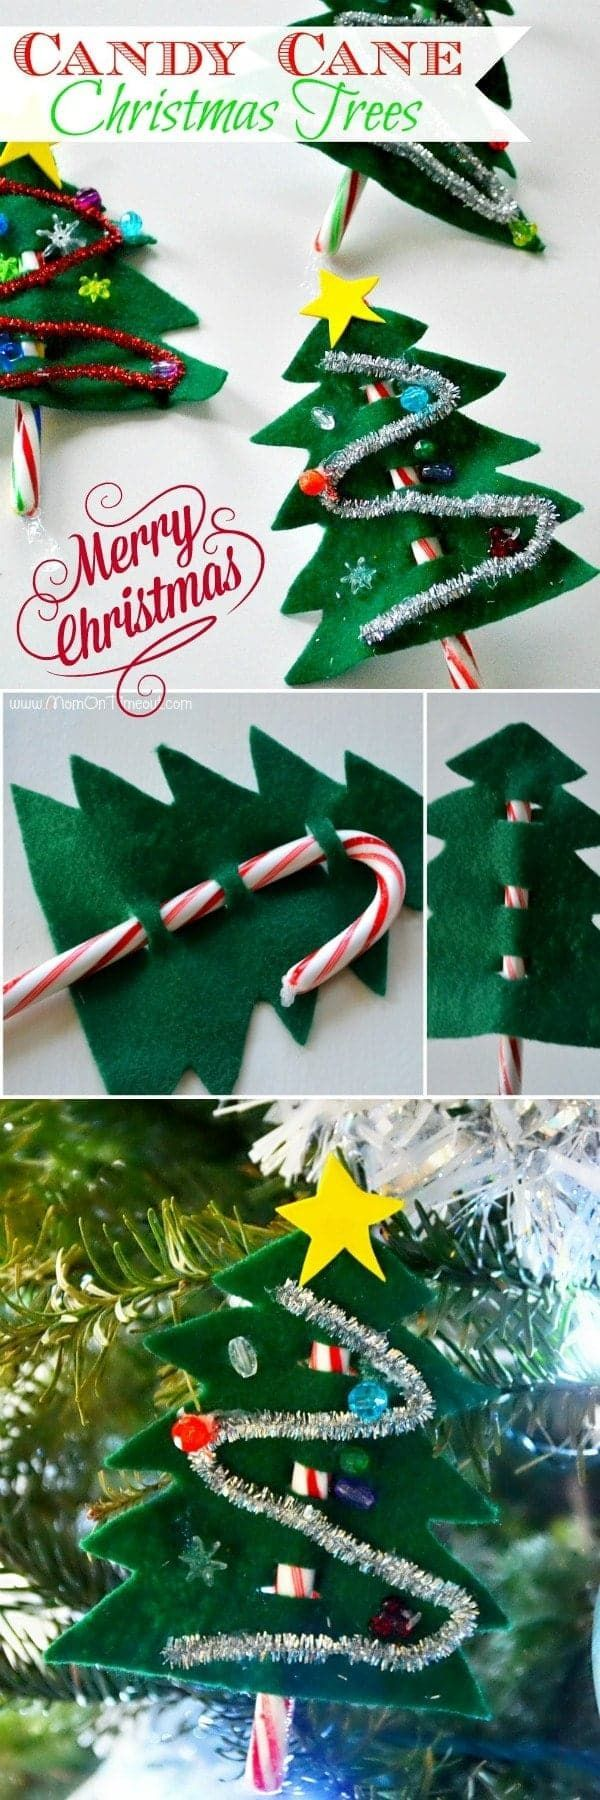 1966 best Christmas Trees images on Pinterest | Xmas trees ...